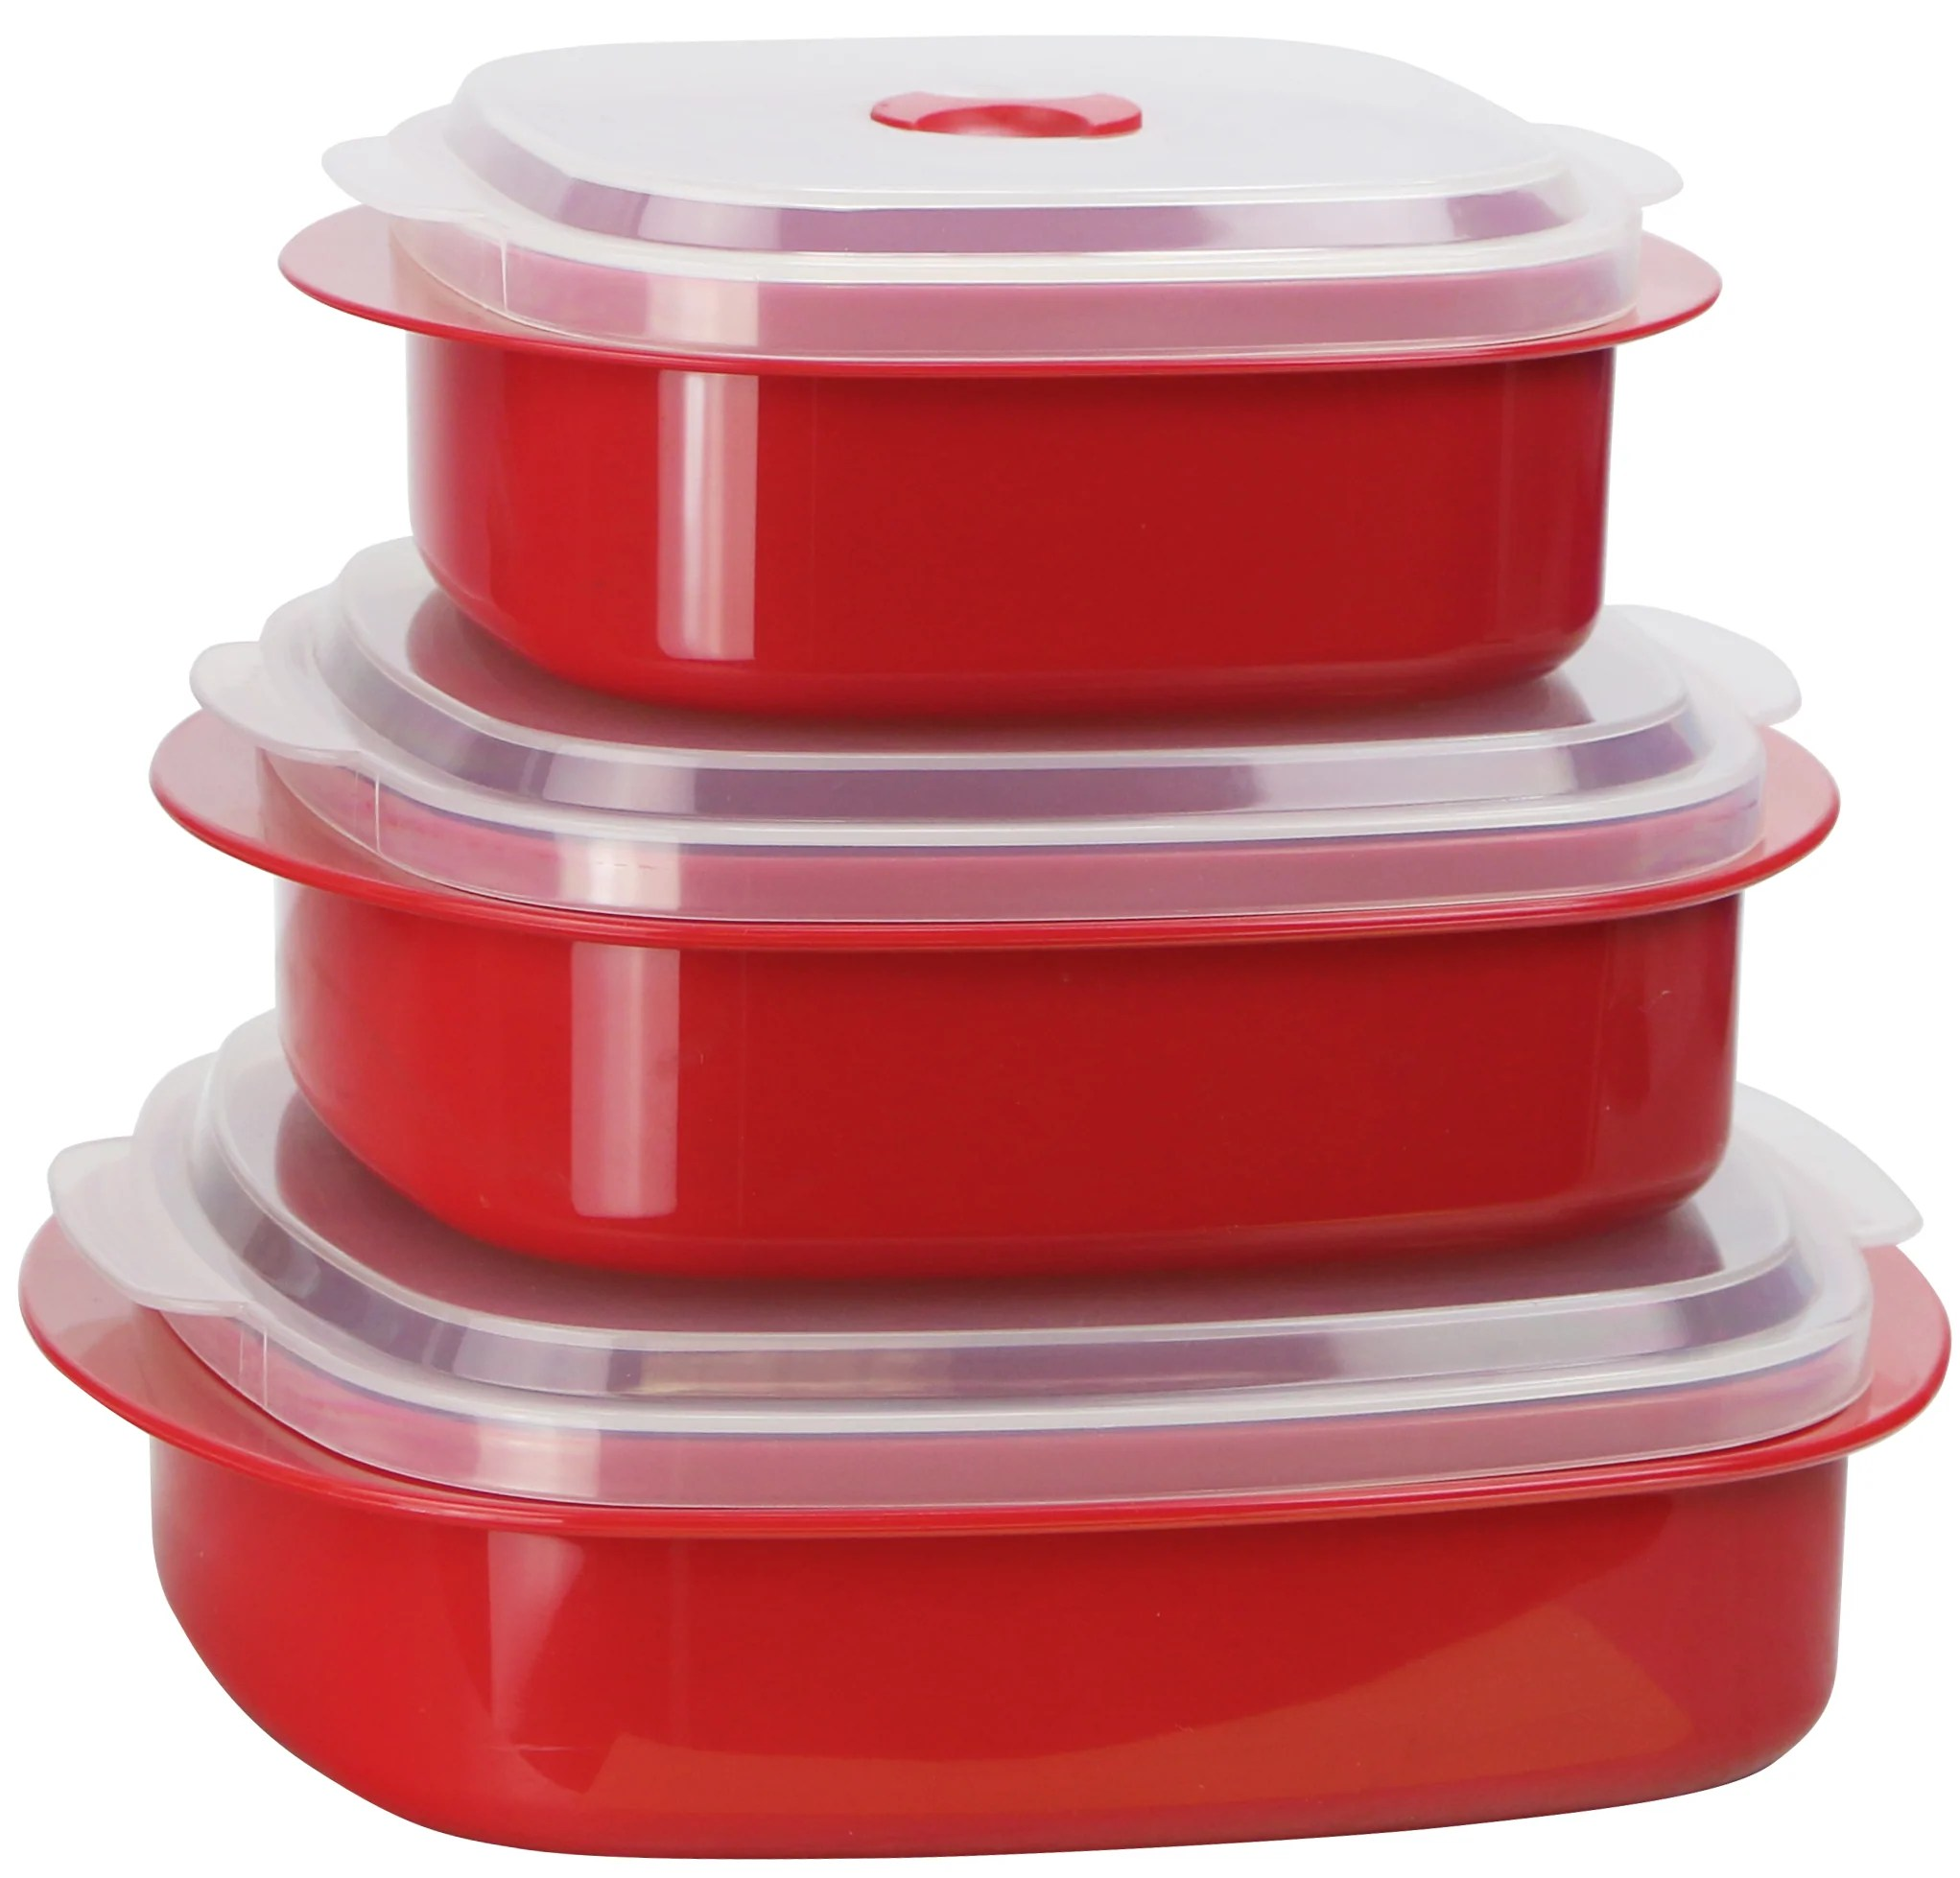 microwave cookware storage set red